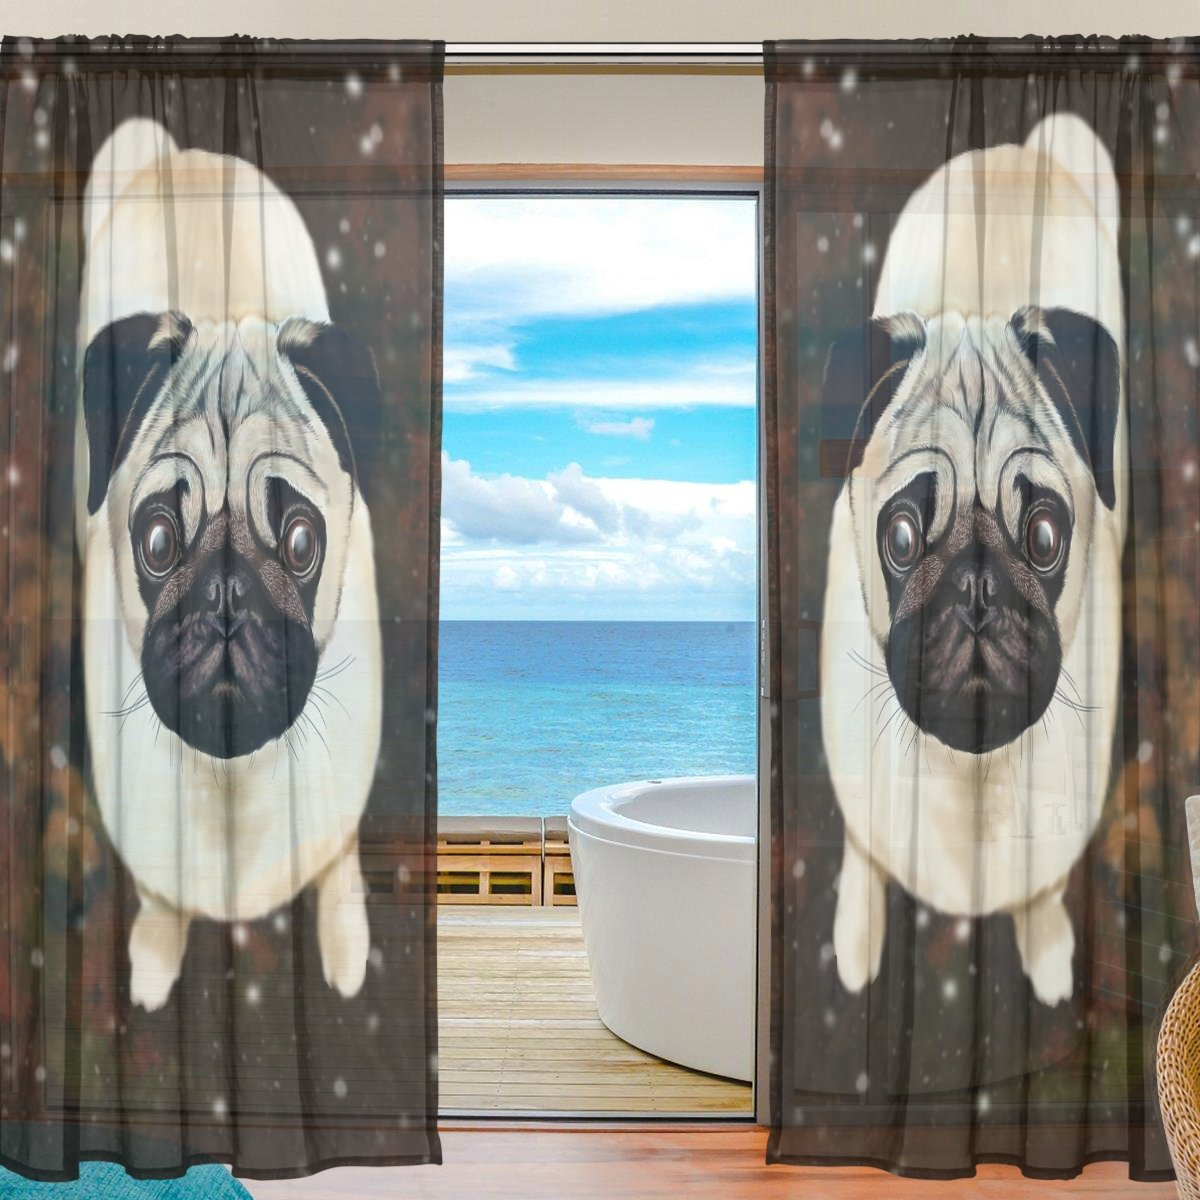 SEULIFE Window Sheer Curtain, Cute Animal Pug Dog Art Painting Voile Curtain Drapes for Door Kitchen Living Room Bedroom 55x78 inches 2 Panels g3911267p112c126s167